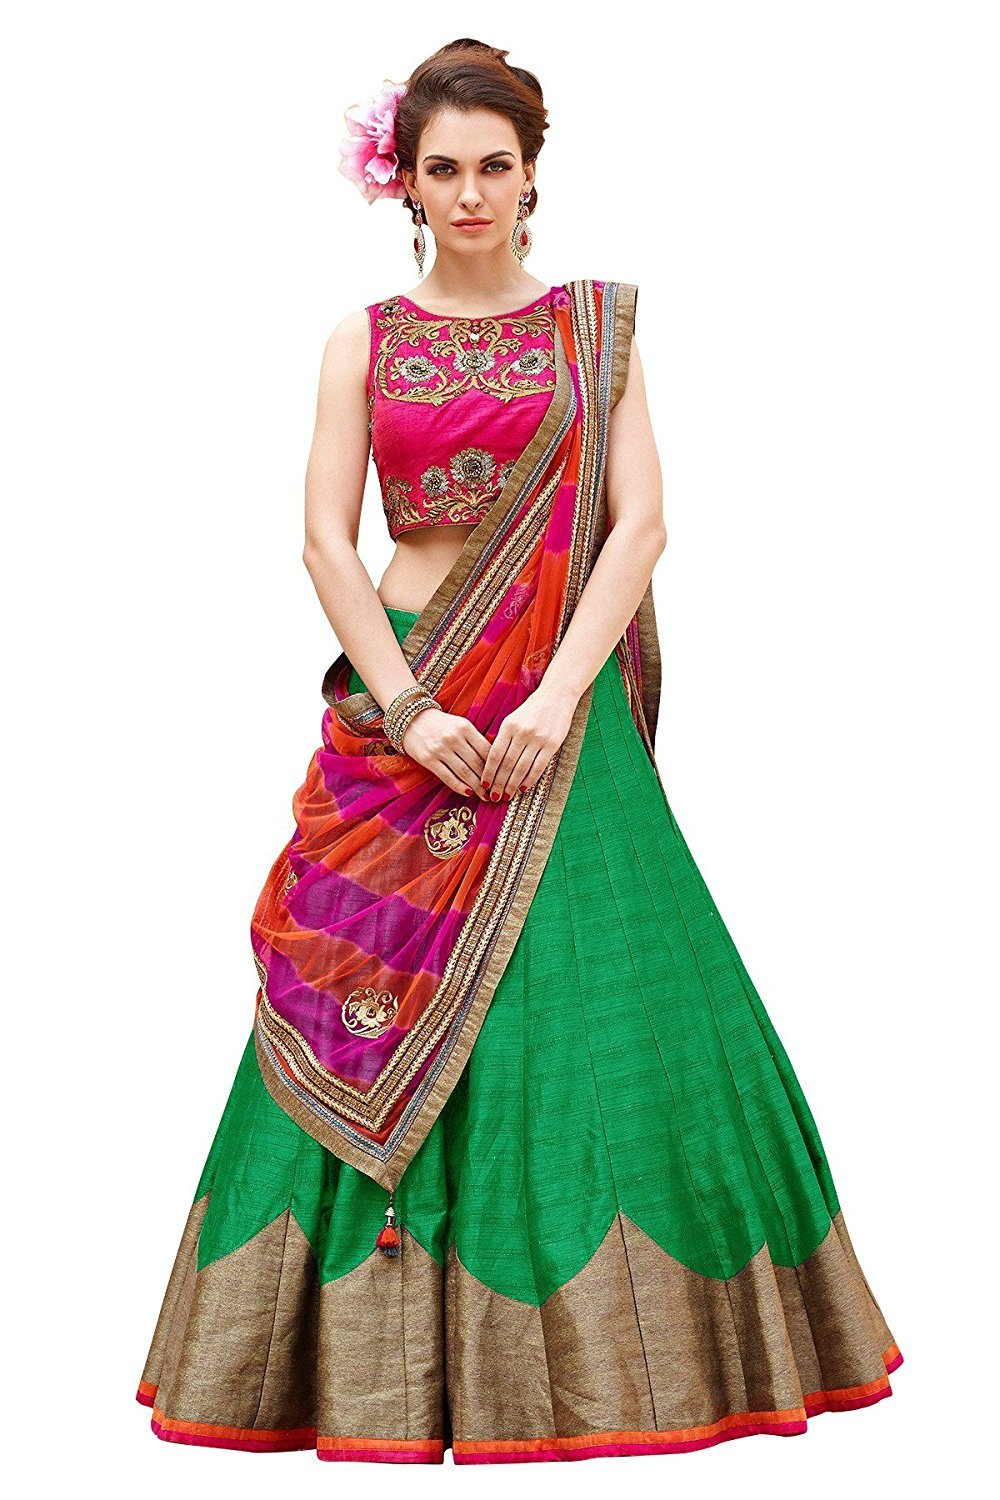 Parrot Green Color Semi-Stitched Lehenga Choli-Roza Green